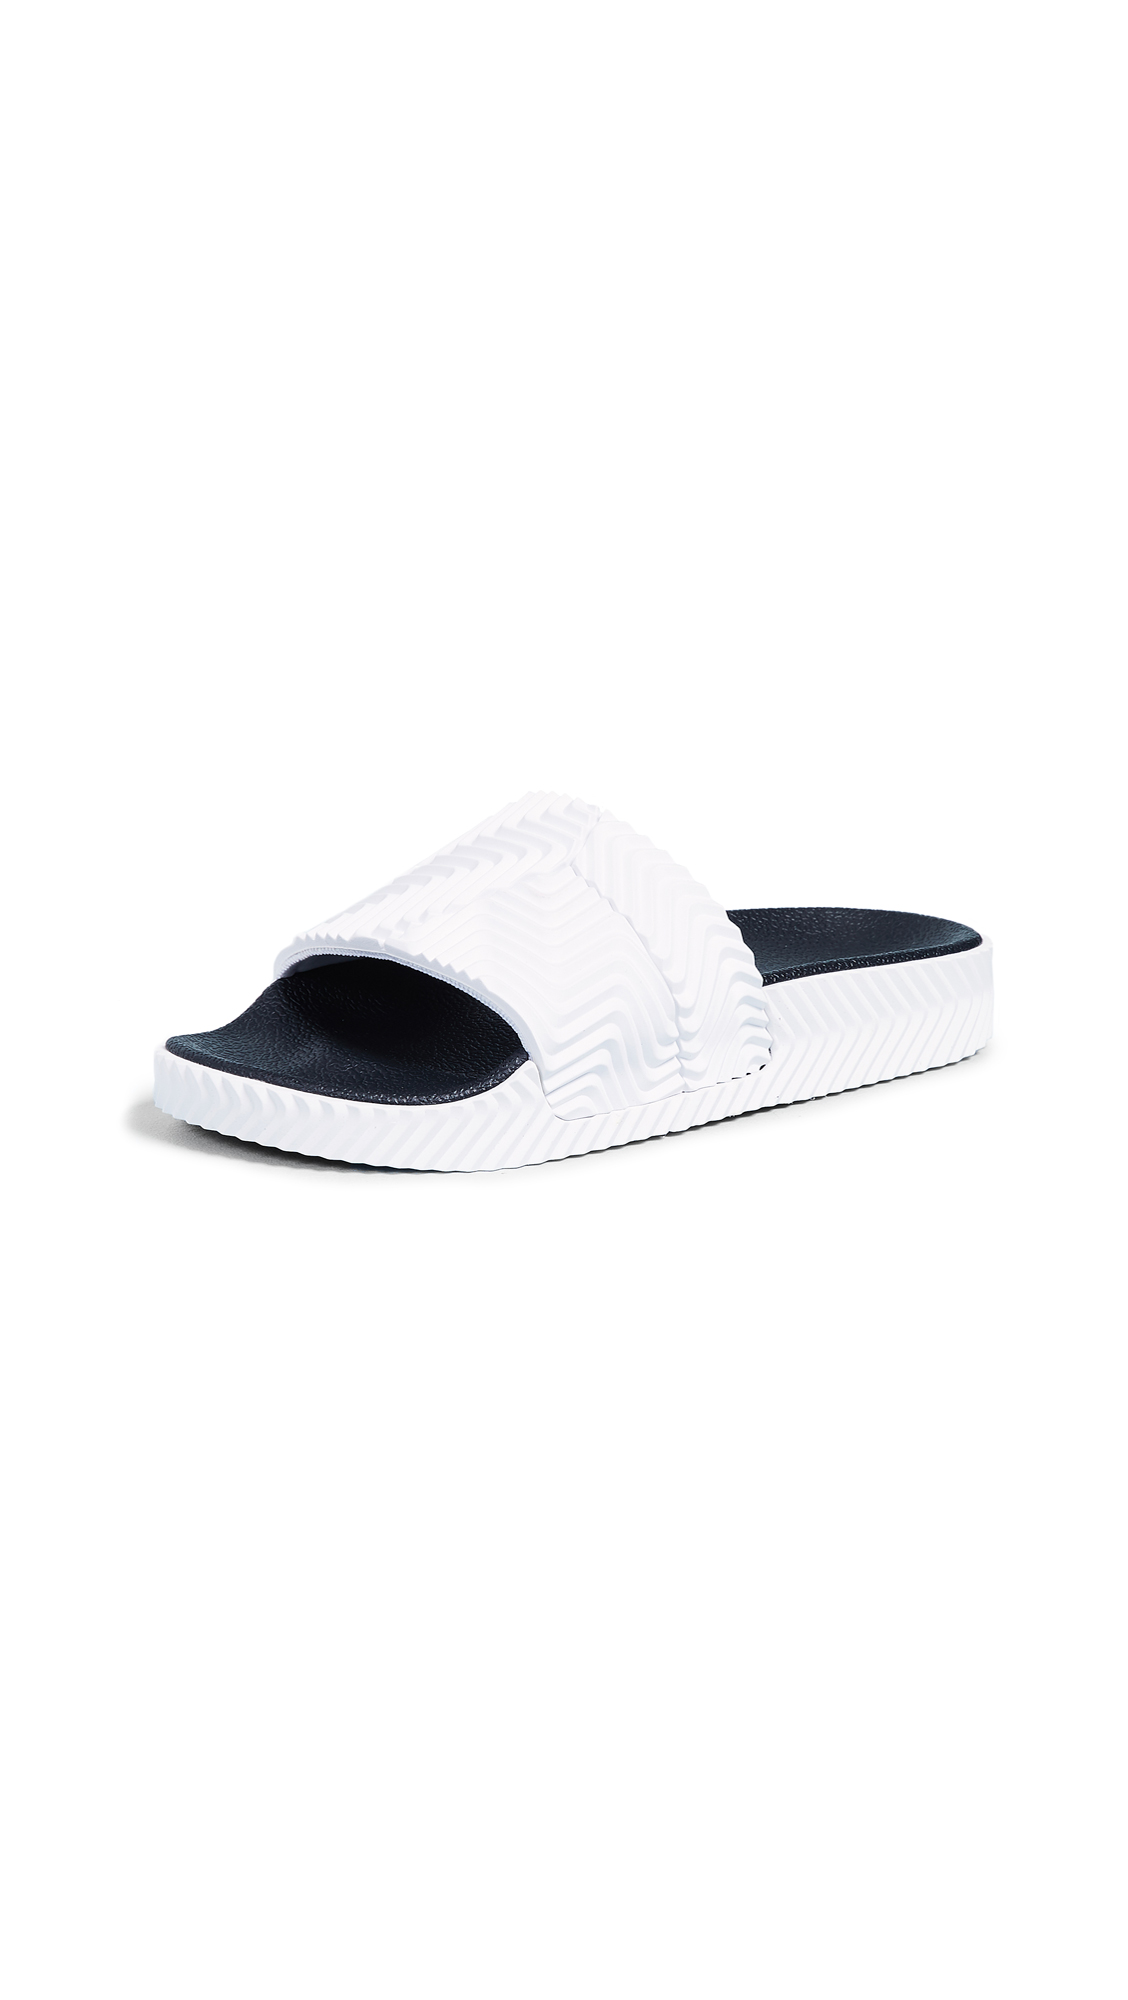 adidas Originals by Alexander Wang AW Adilette Slides - Ftwr White